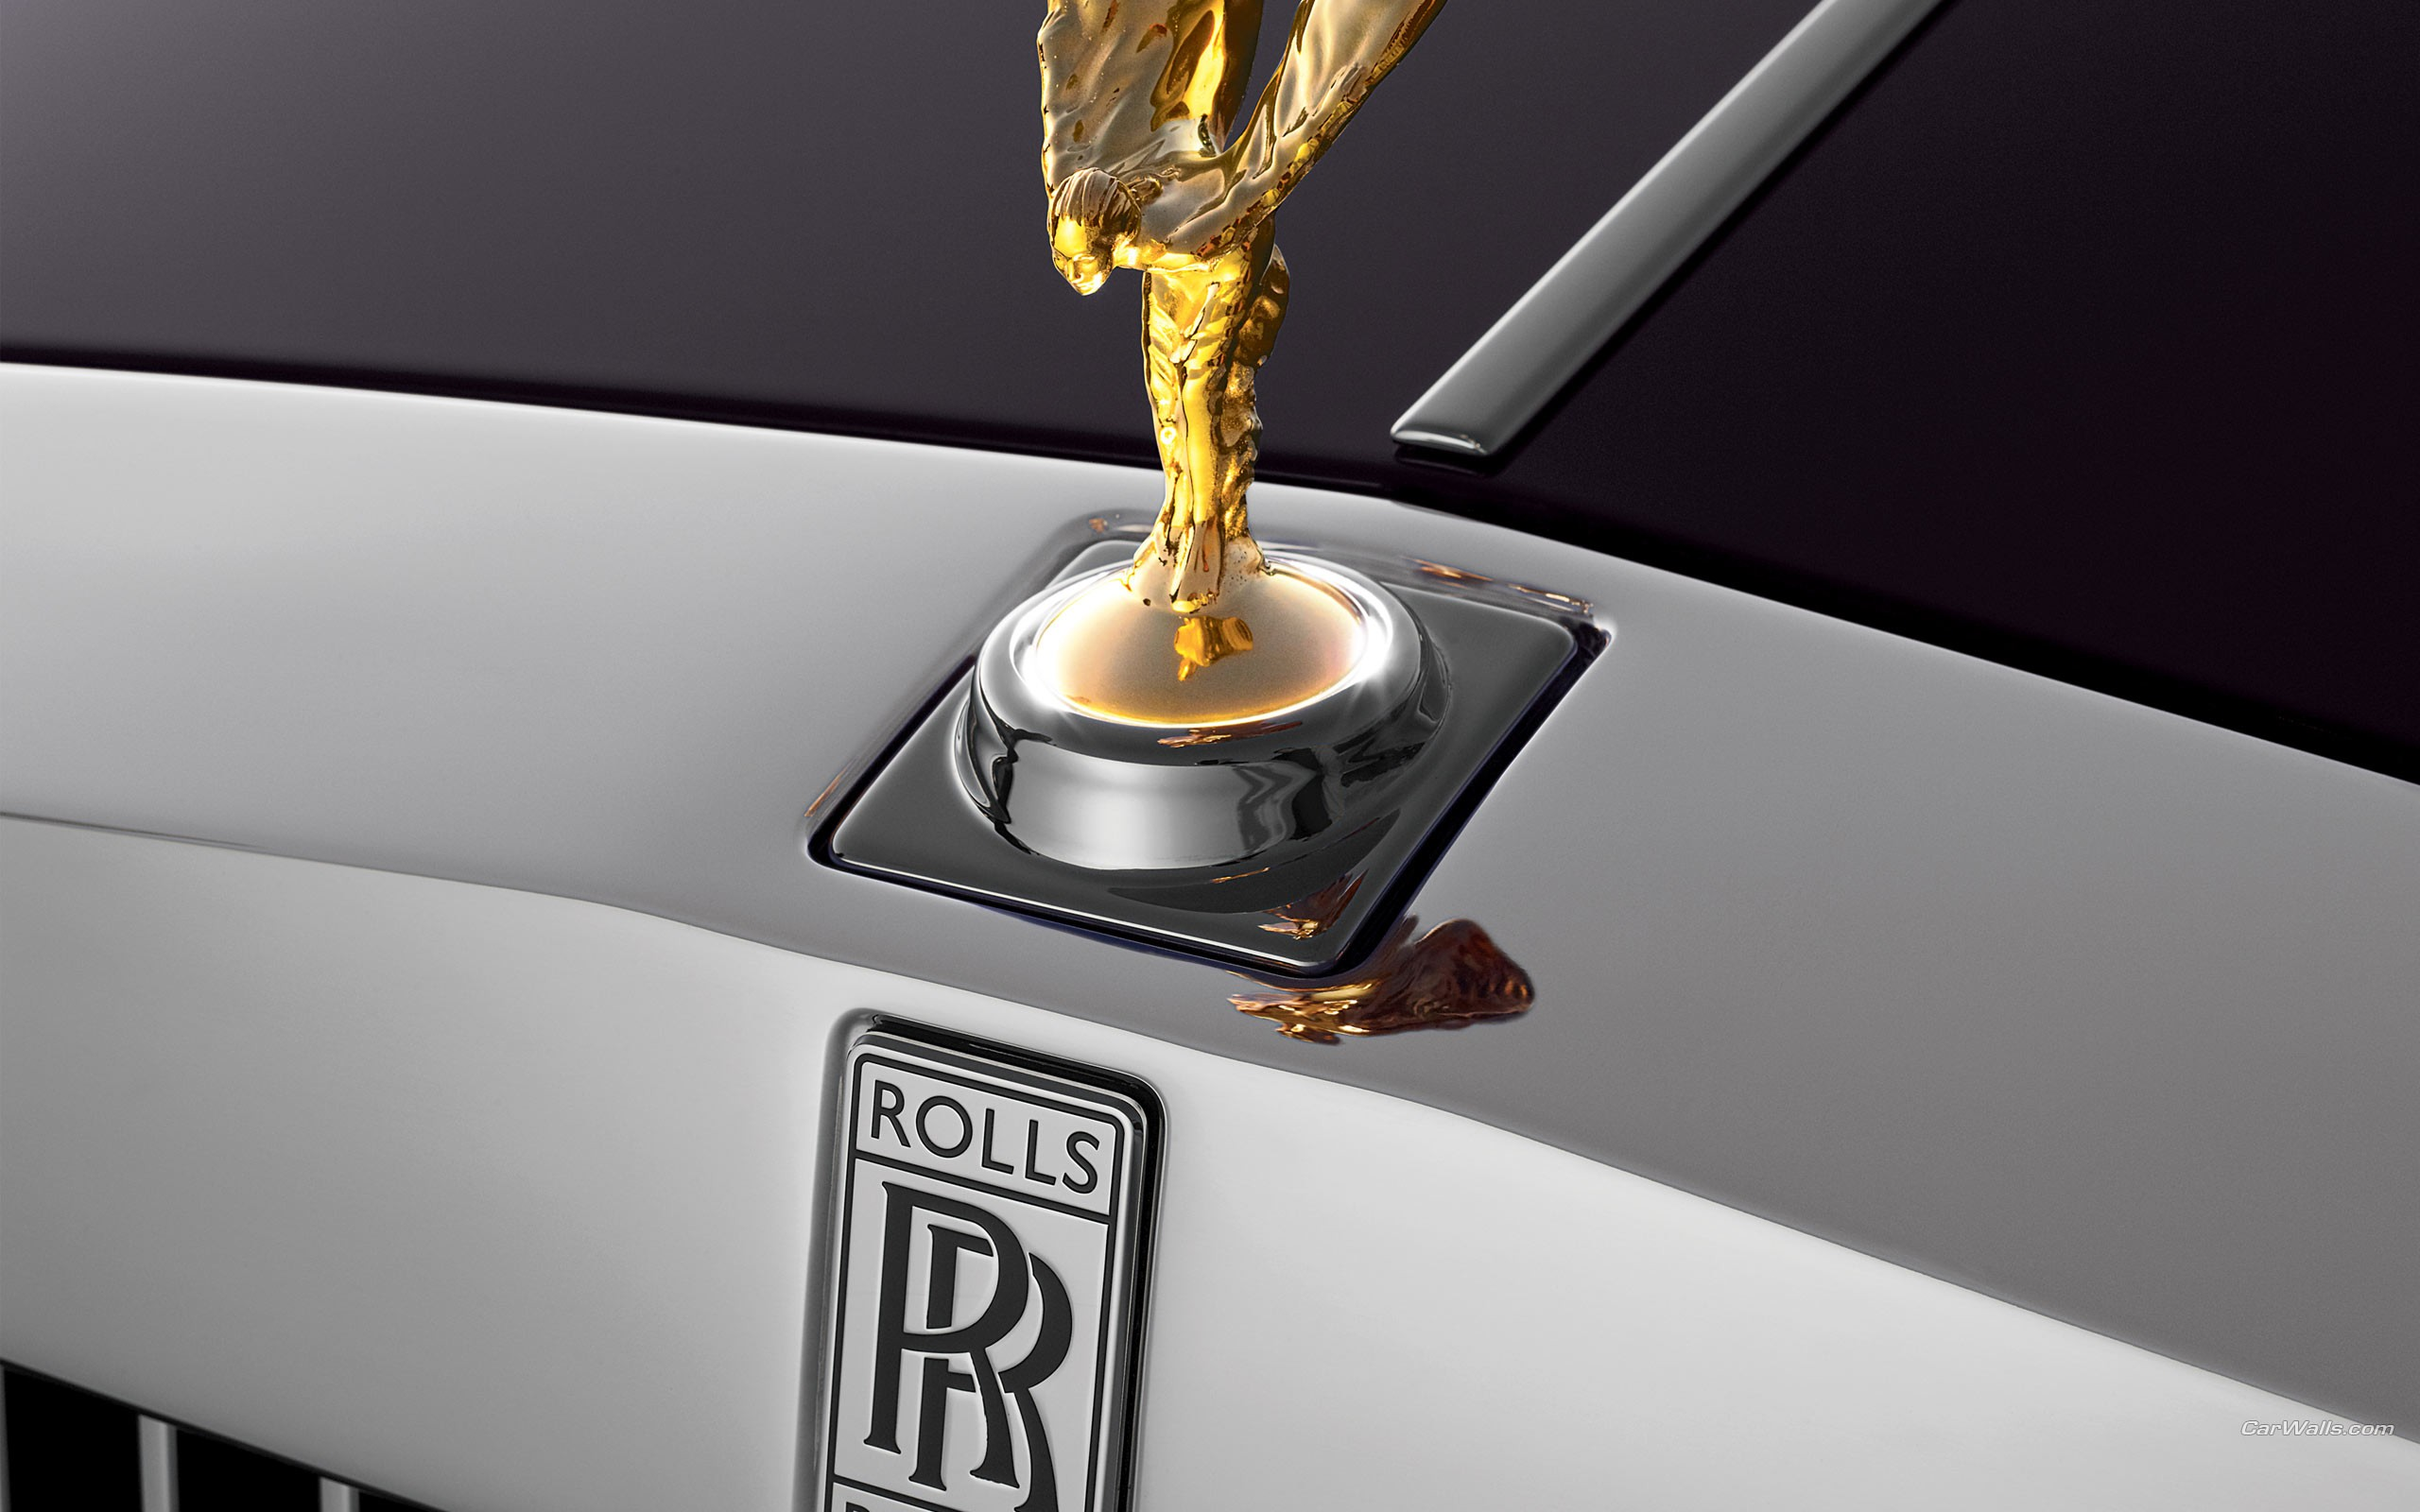 High Quality Rolls-Royce Wallpaper | Full HD Pics